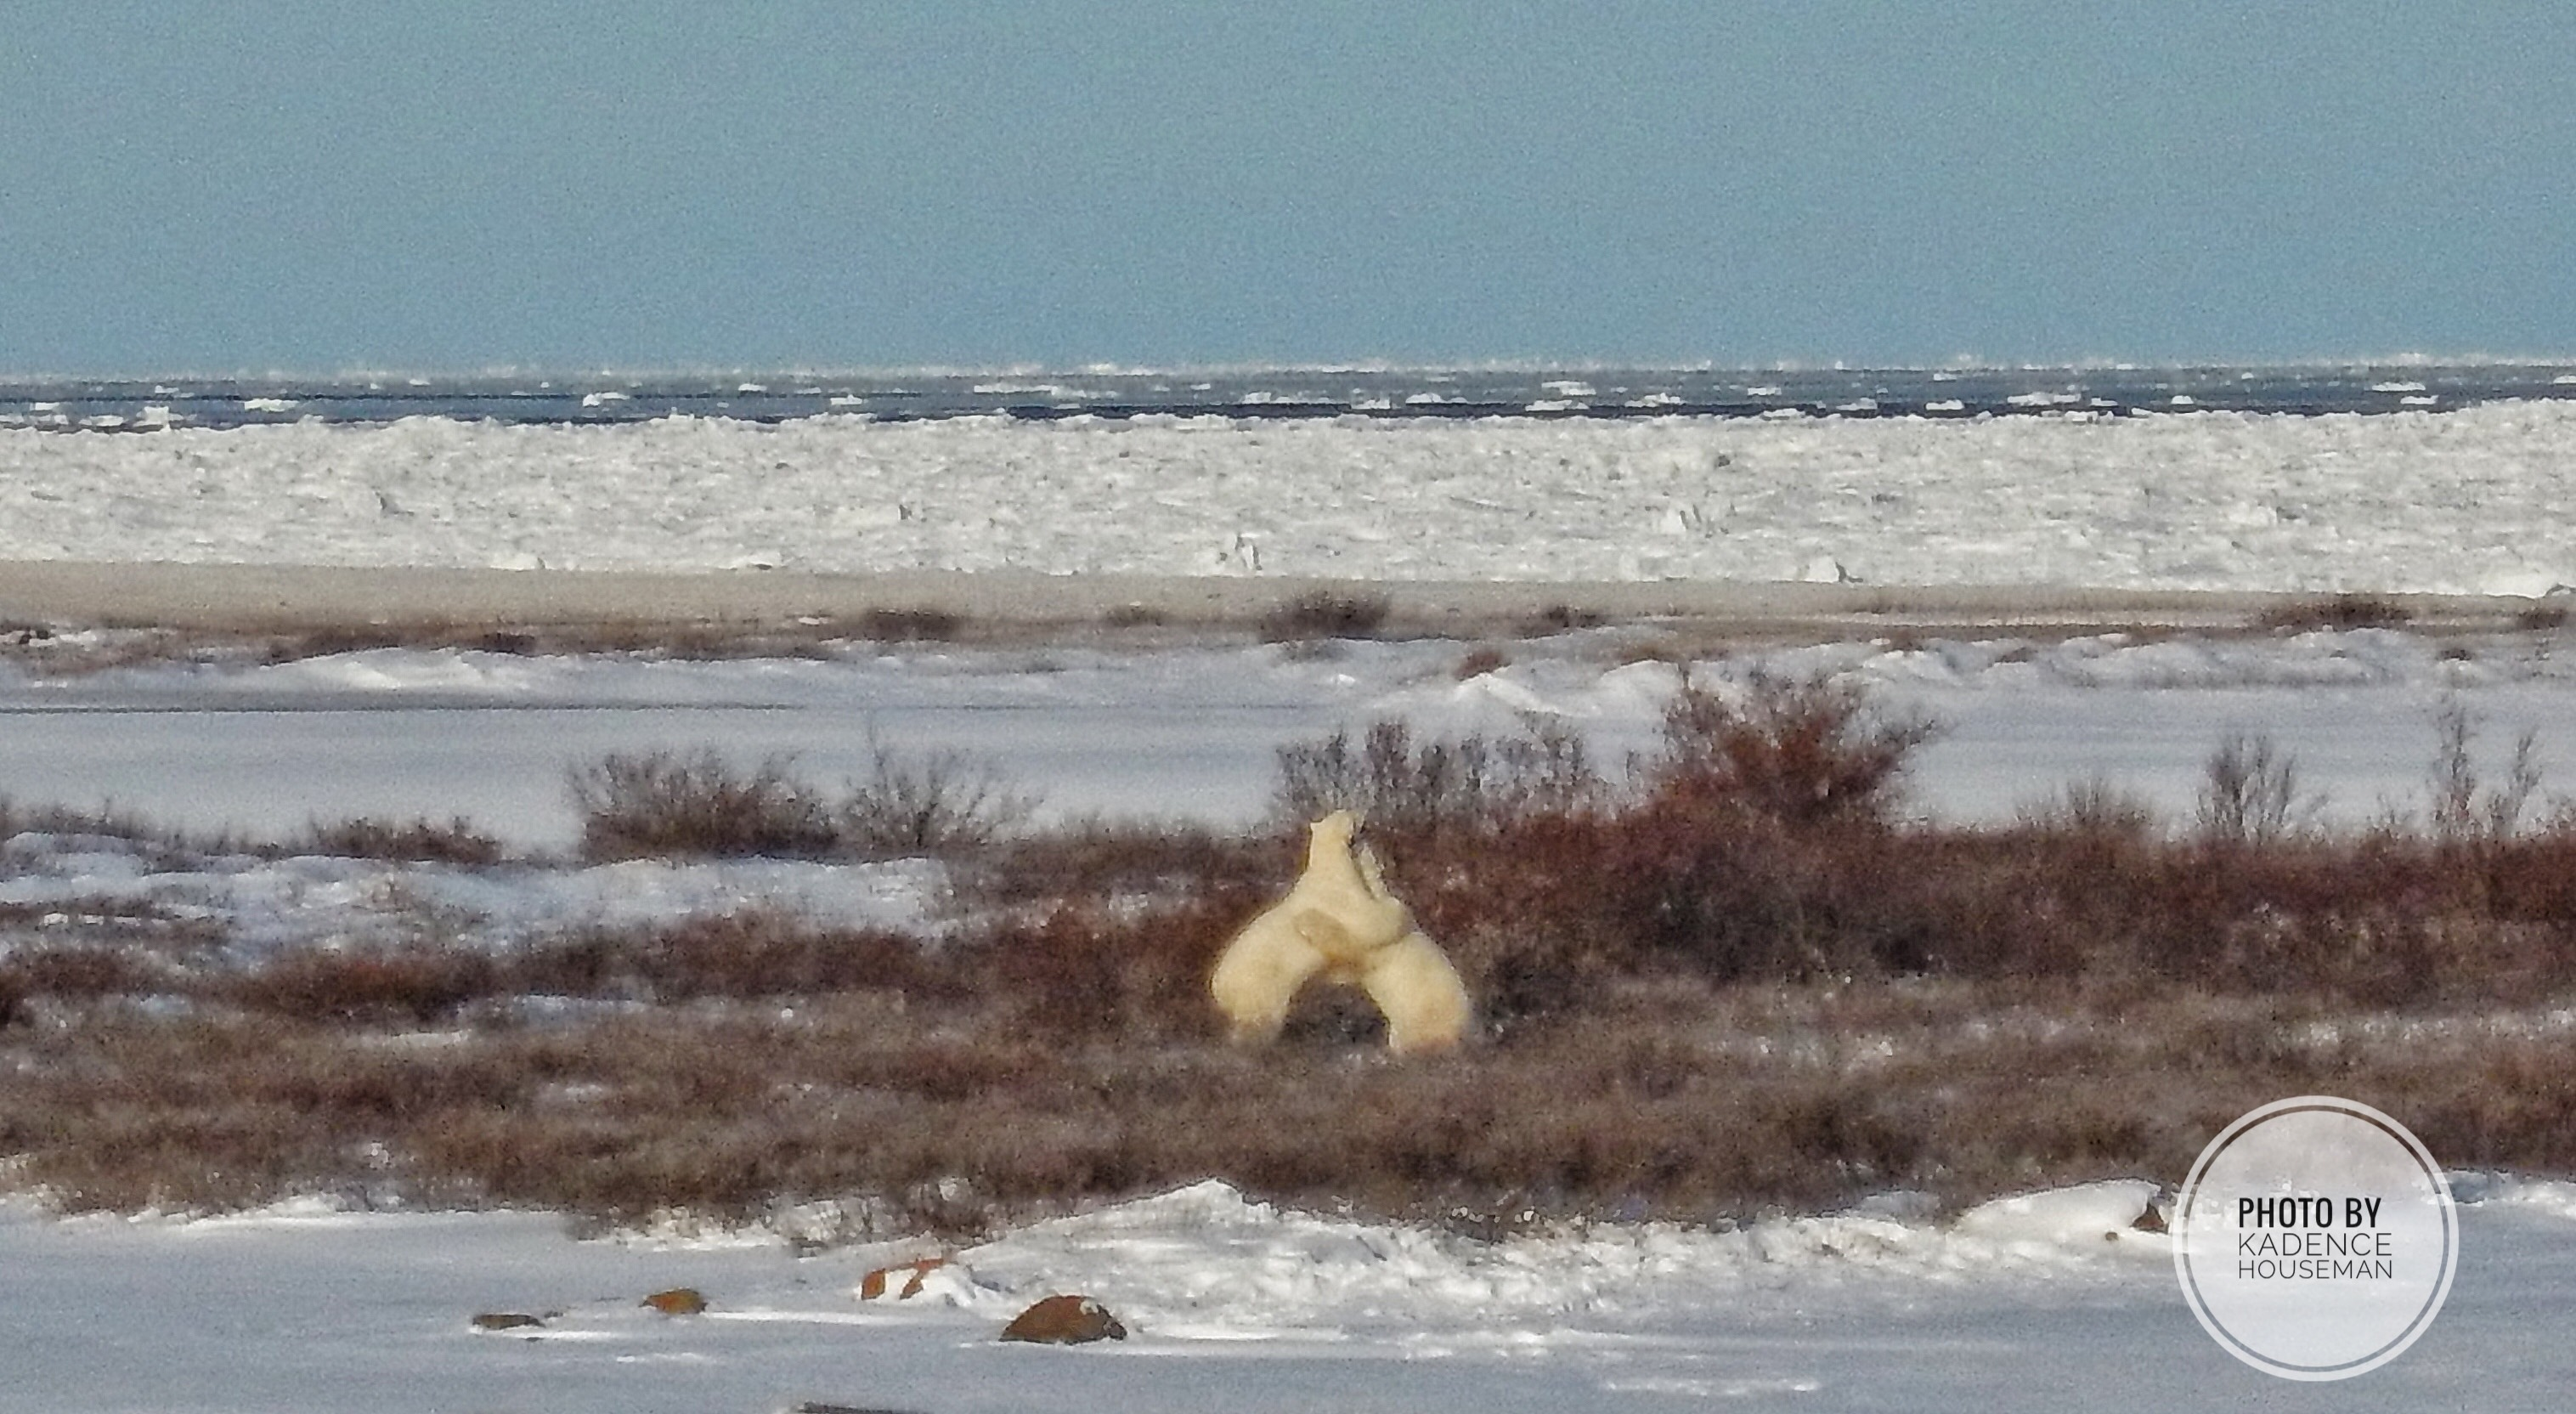 Polar bears | picture of polar bears playing